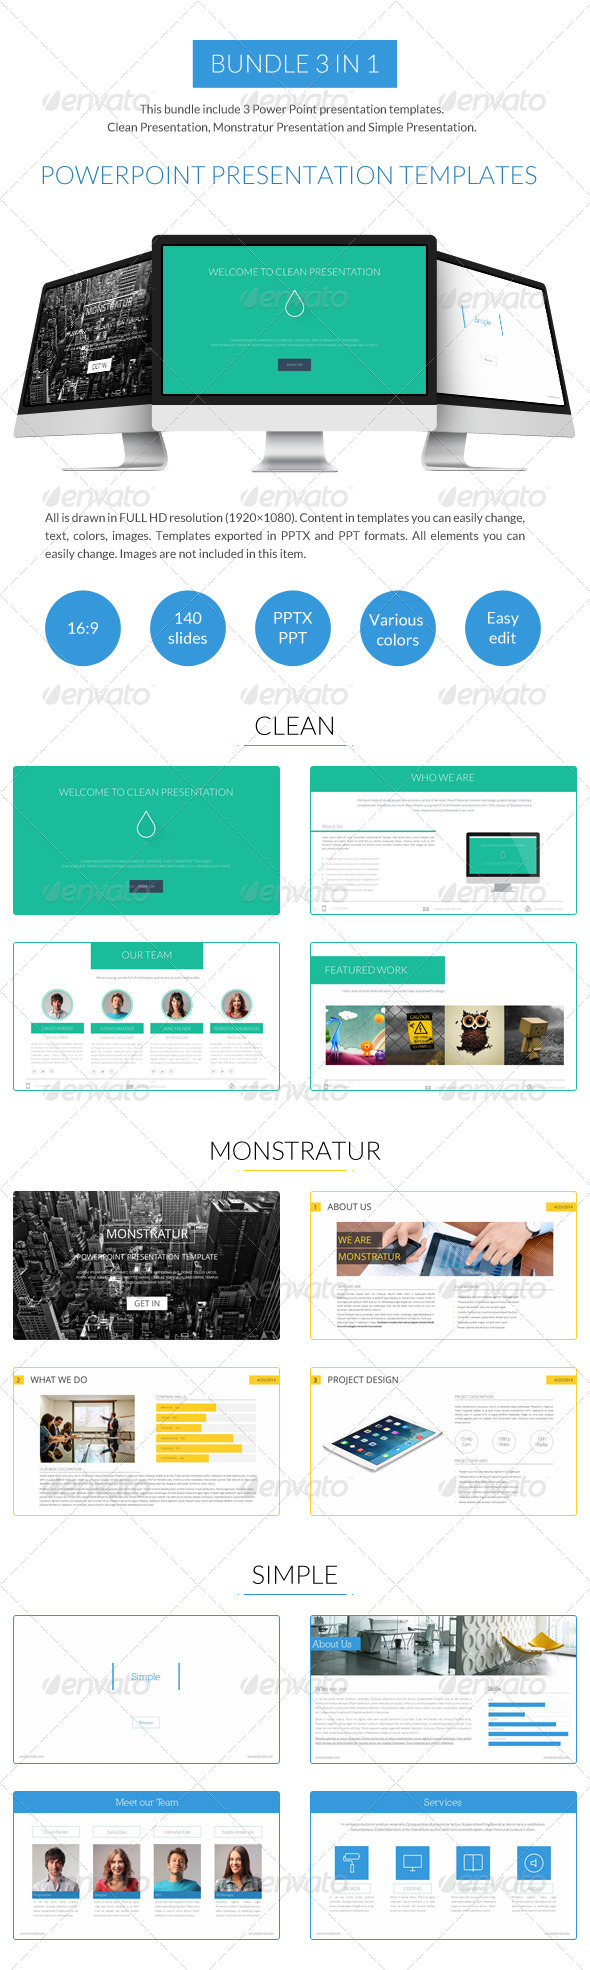 GraphicRiver Bundle 3 in 1 Power Point Presentation Templates 7849168